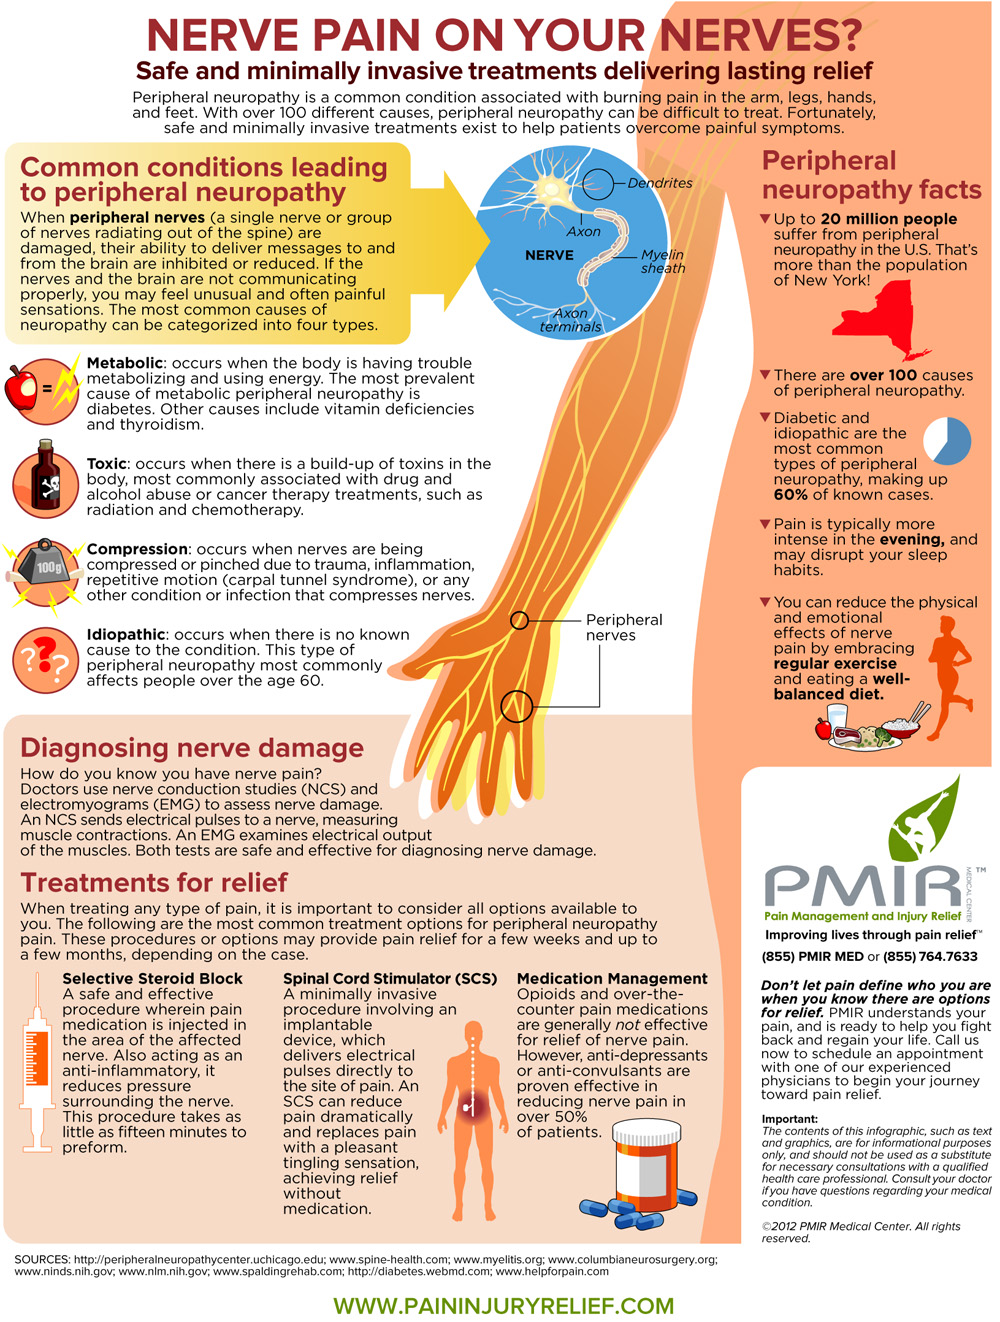 Nerve Pain on your Nerves?